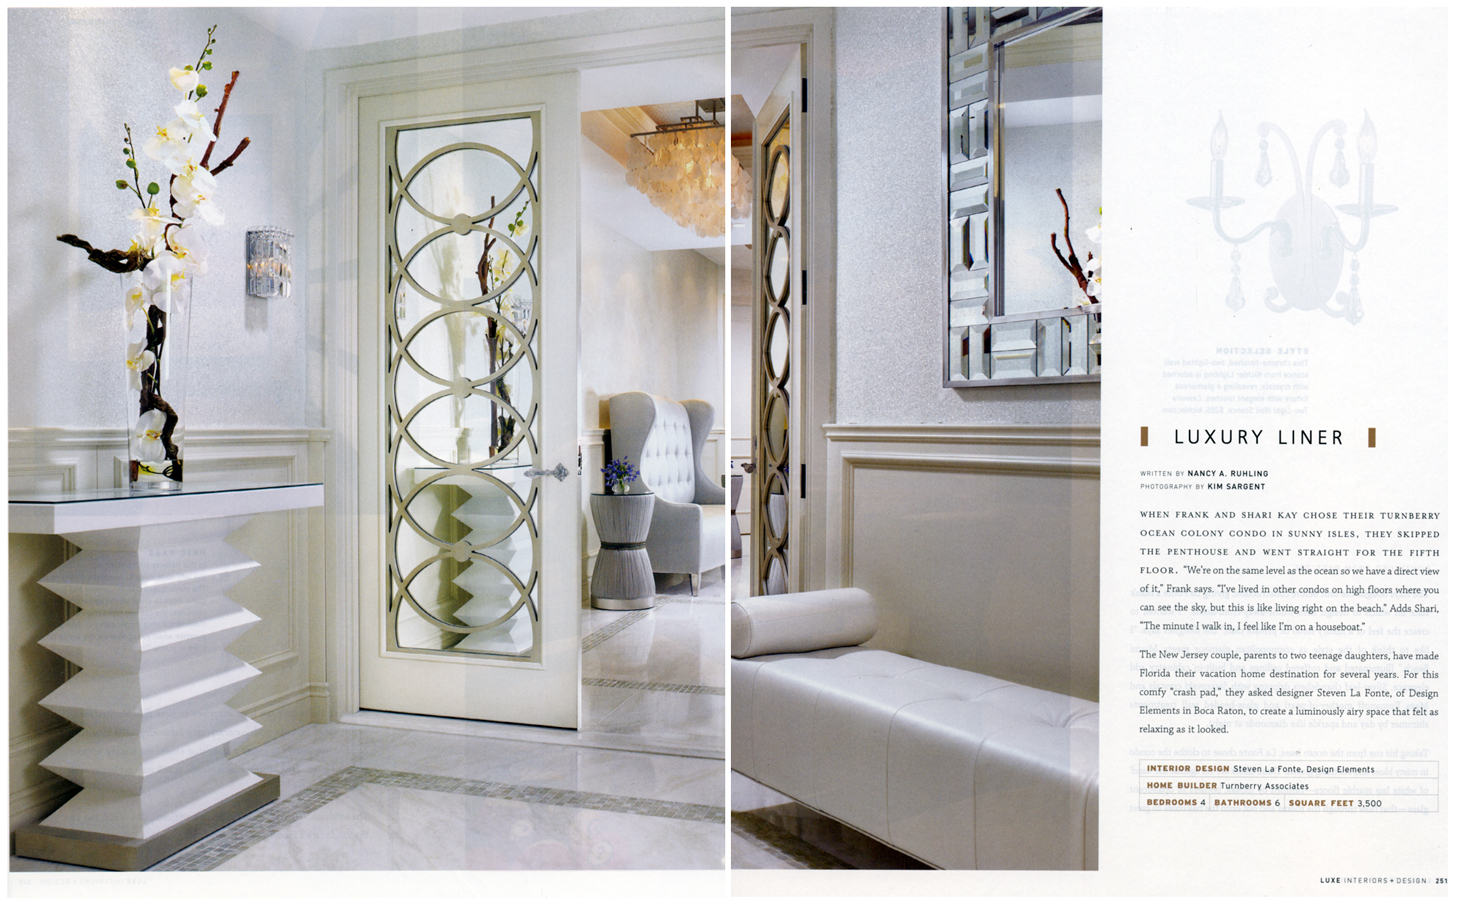 luxe Interiors Design South Florida Luxury Liner